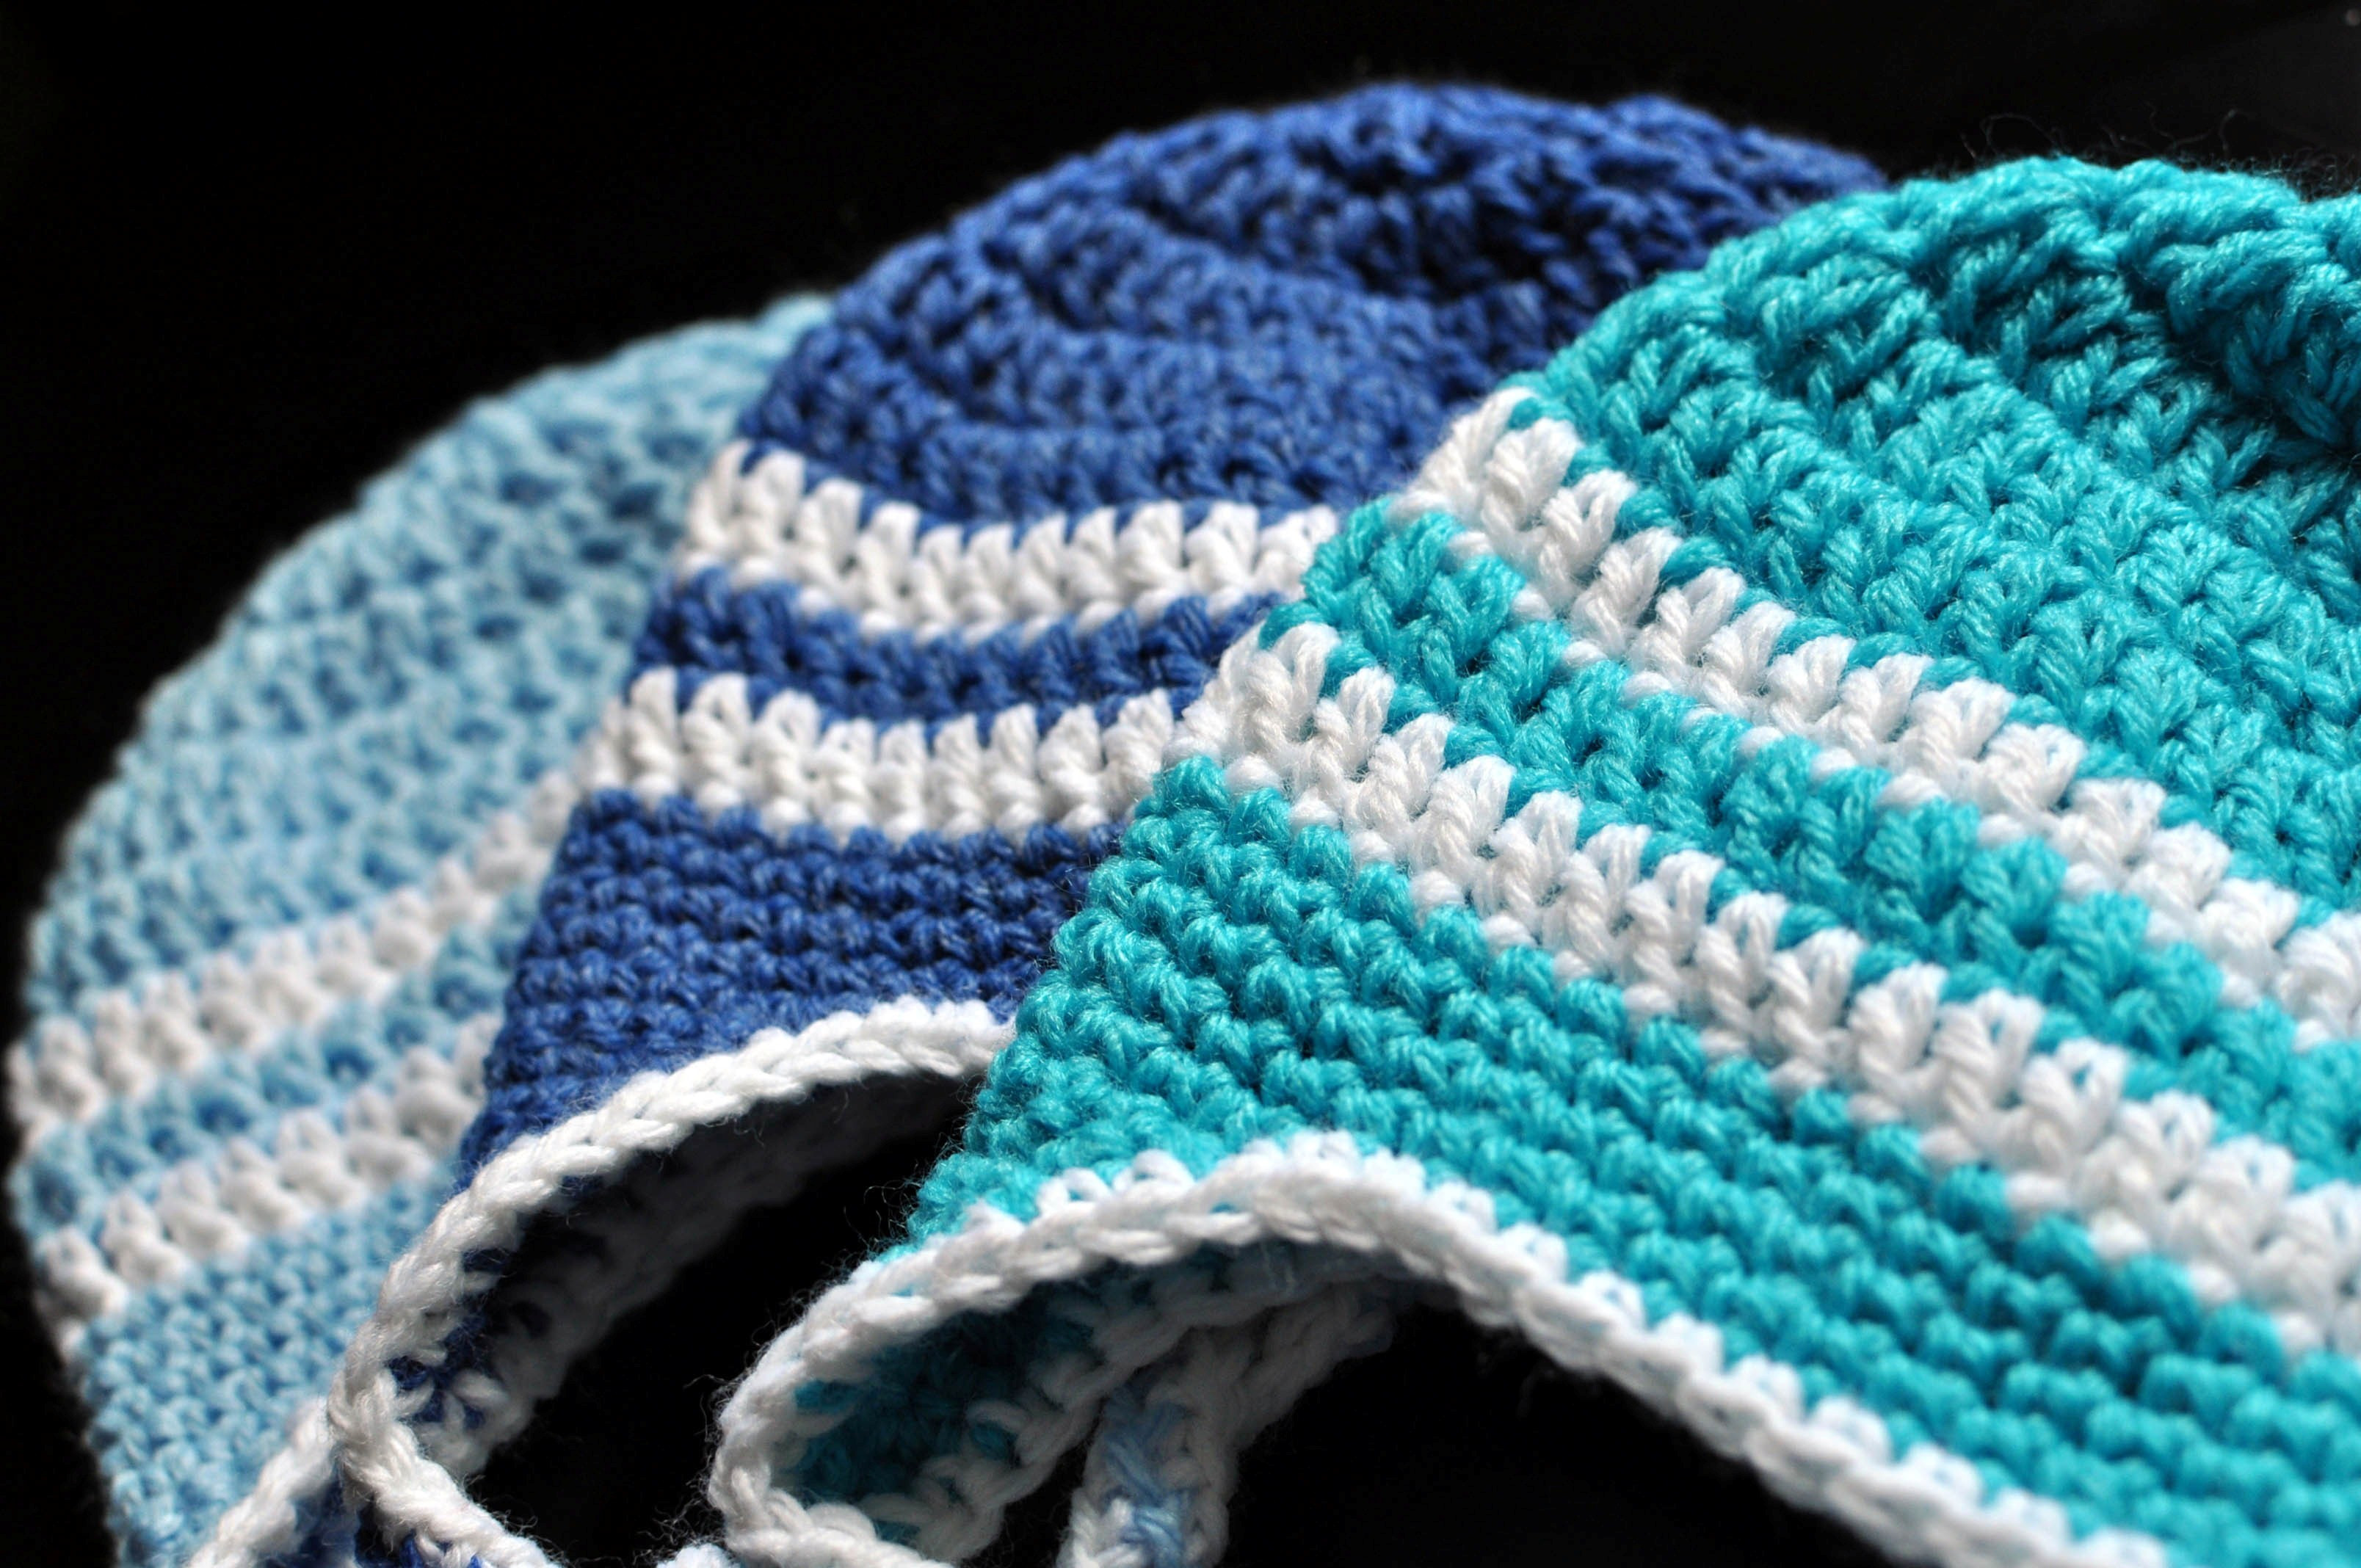 Crochet Hat with Ear Flaps Best Of Free Crochet Pattern for Baby Boy Hat with Ear Flaps Of Delightful 50 Pictures Crochet Hat with Ear Flaps